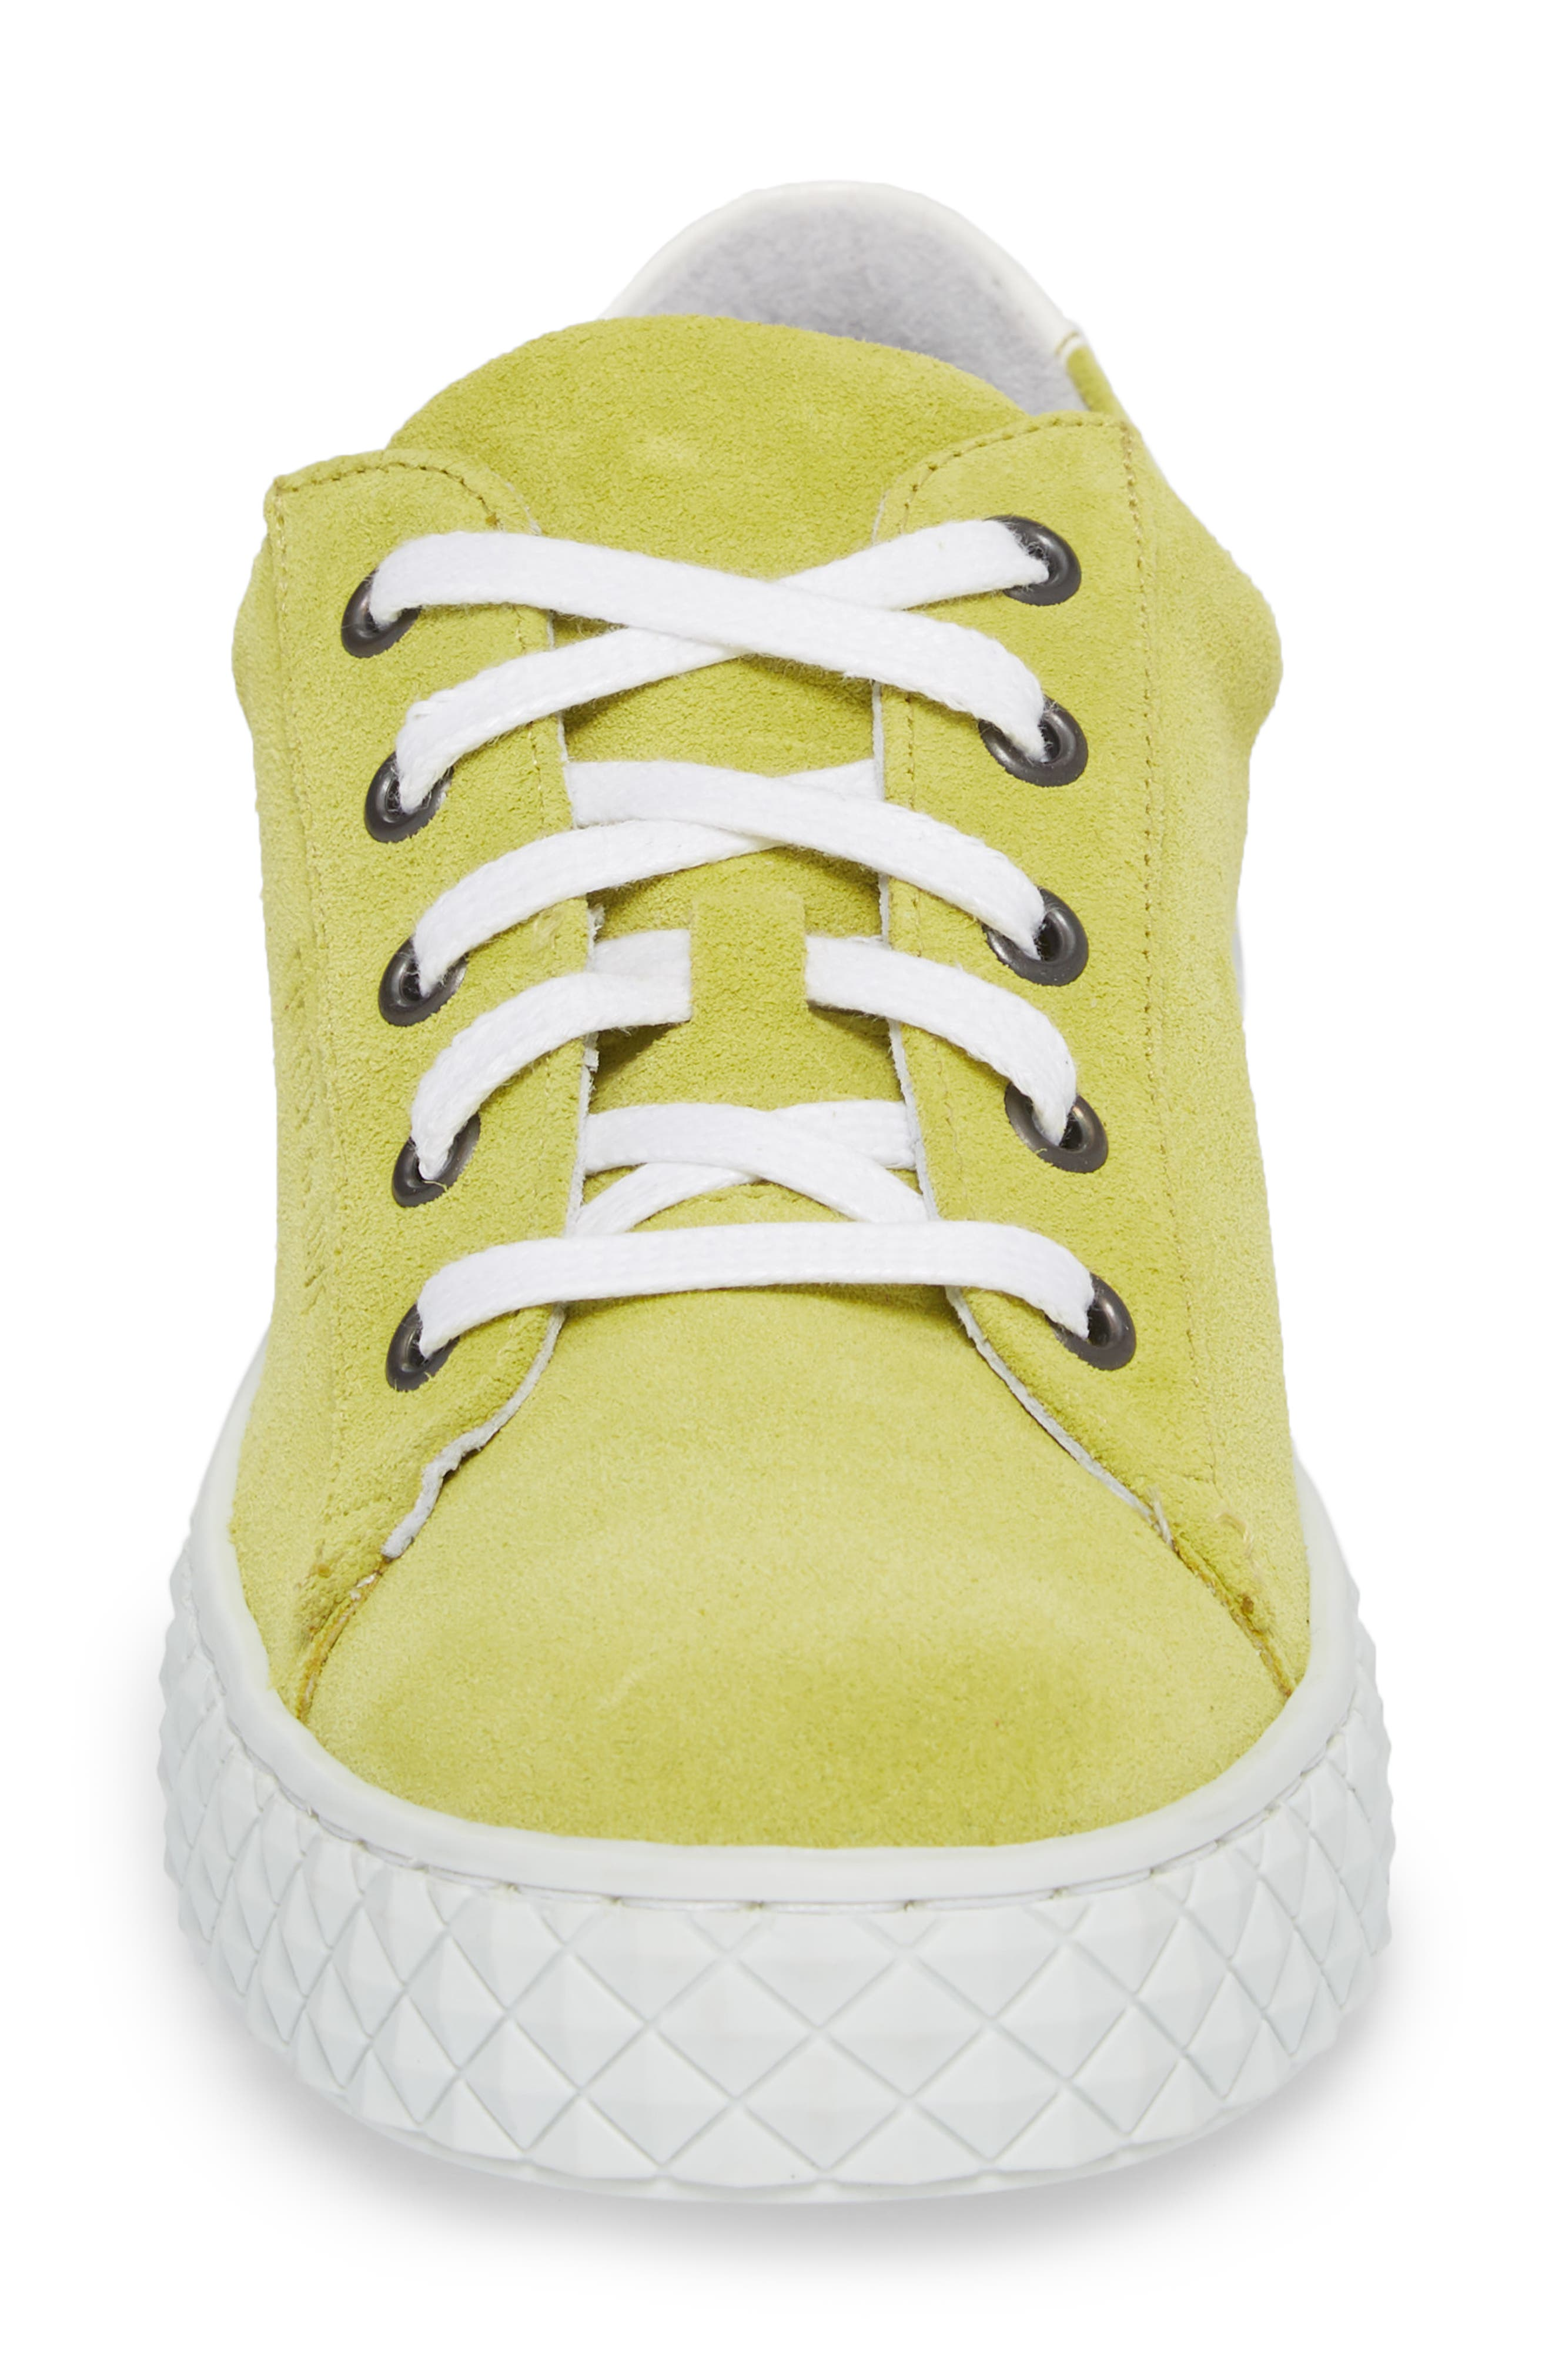 Albufeira Sneaker,                             Alternate thumbnail 4, color,                             Lime/ Optic White Suede